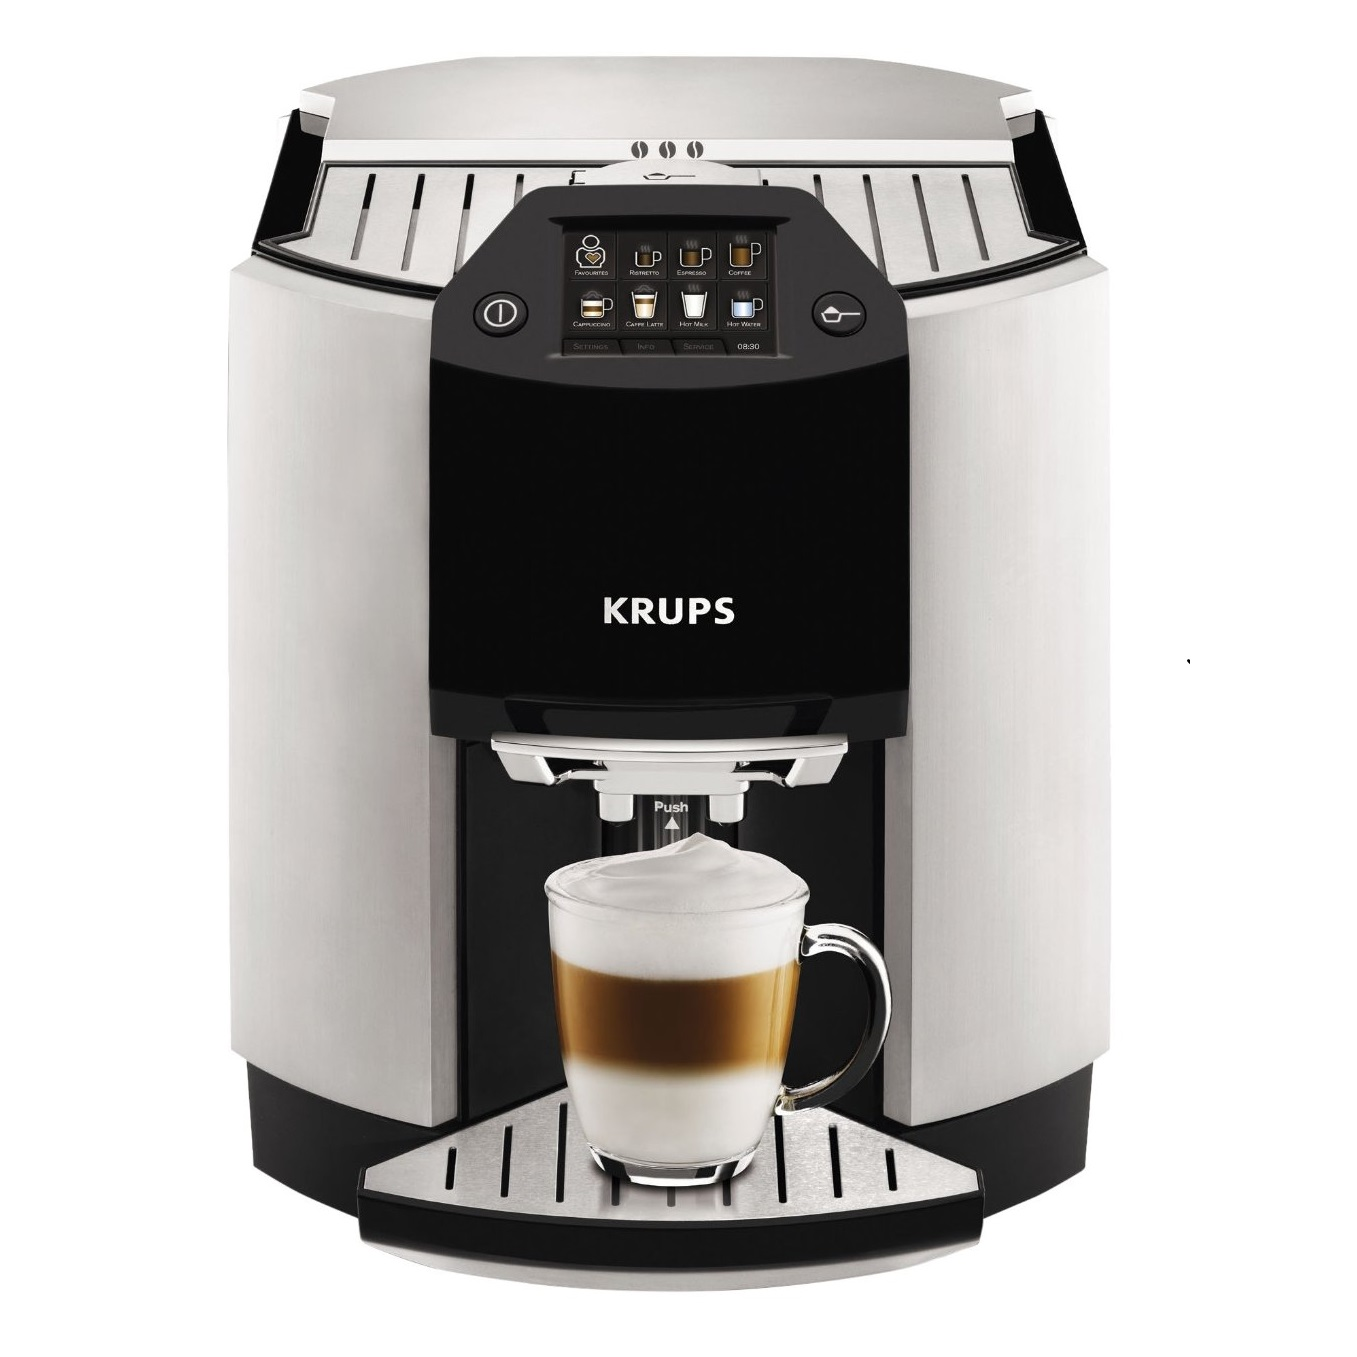 Krups Coffee Maker At Target : KRUPS Barista One Touch Cappuccino EA9010 Fully Automatic Machine MALIBU MART